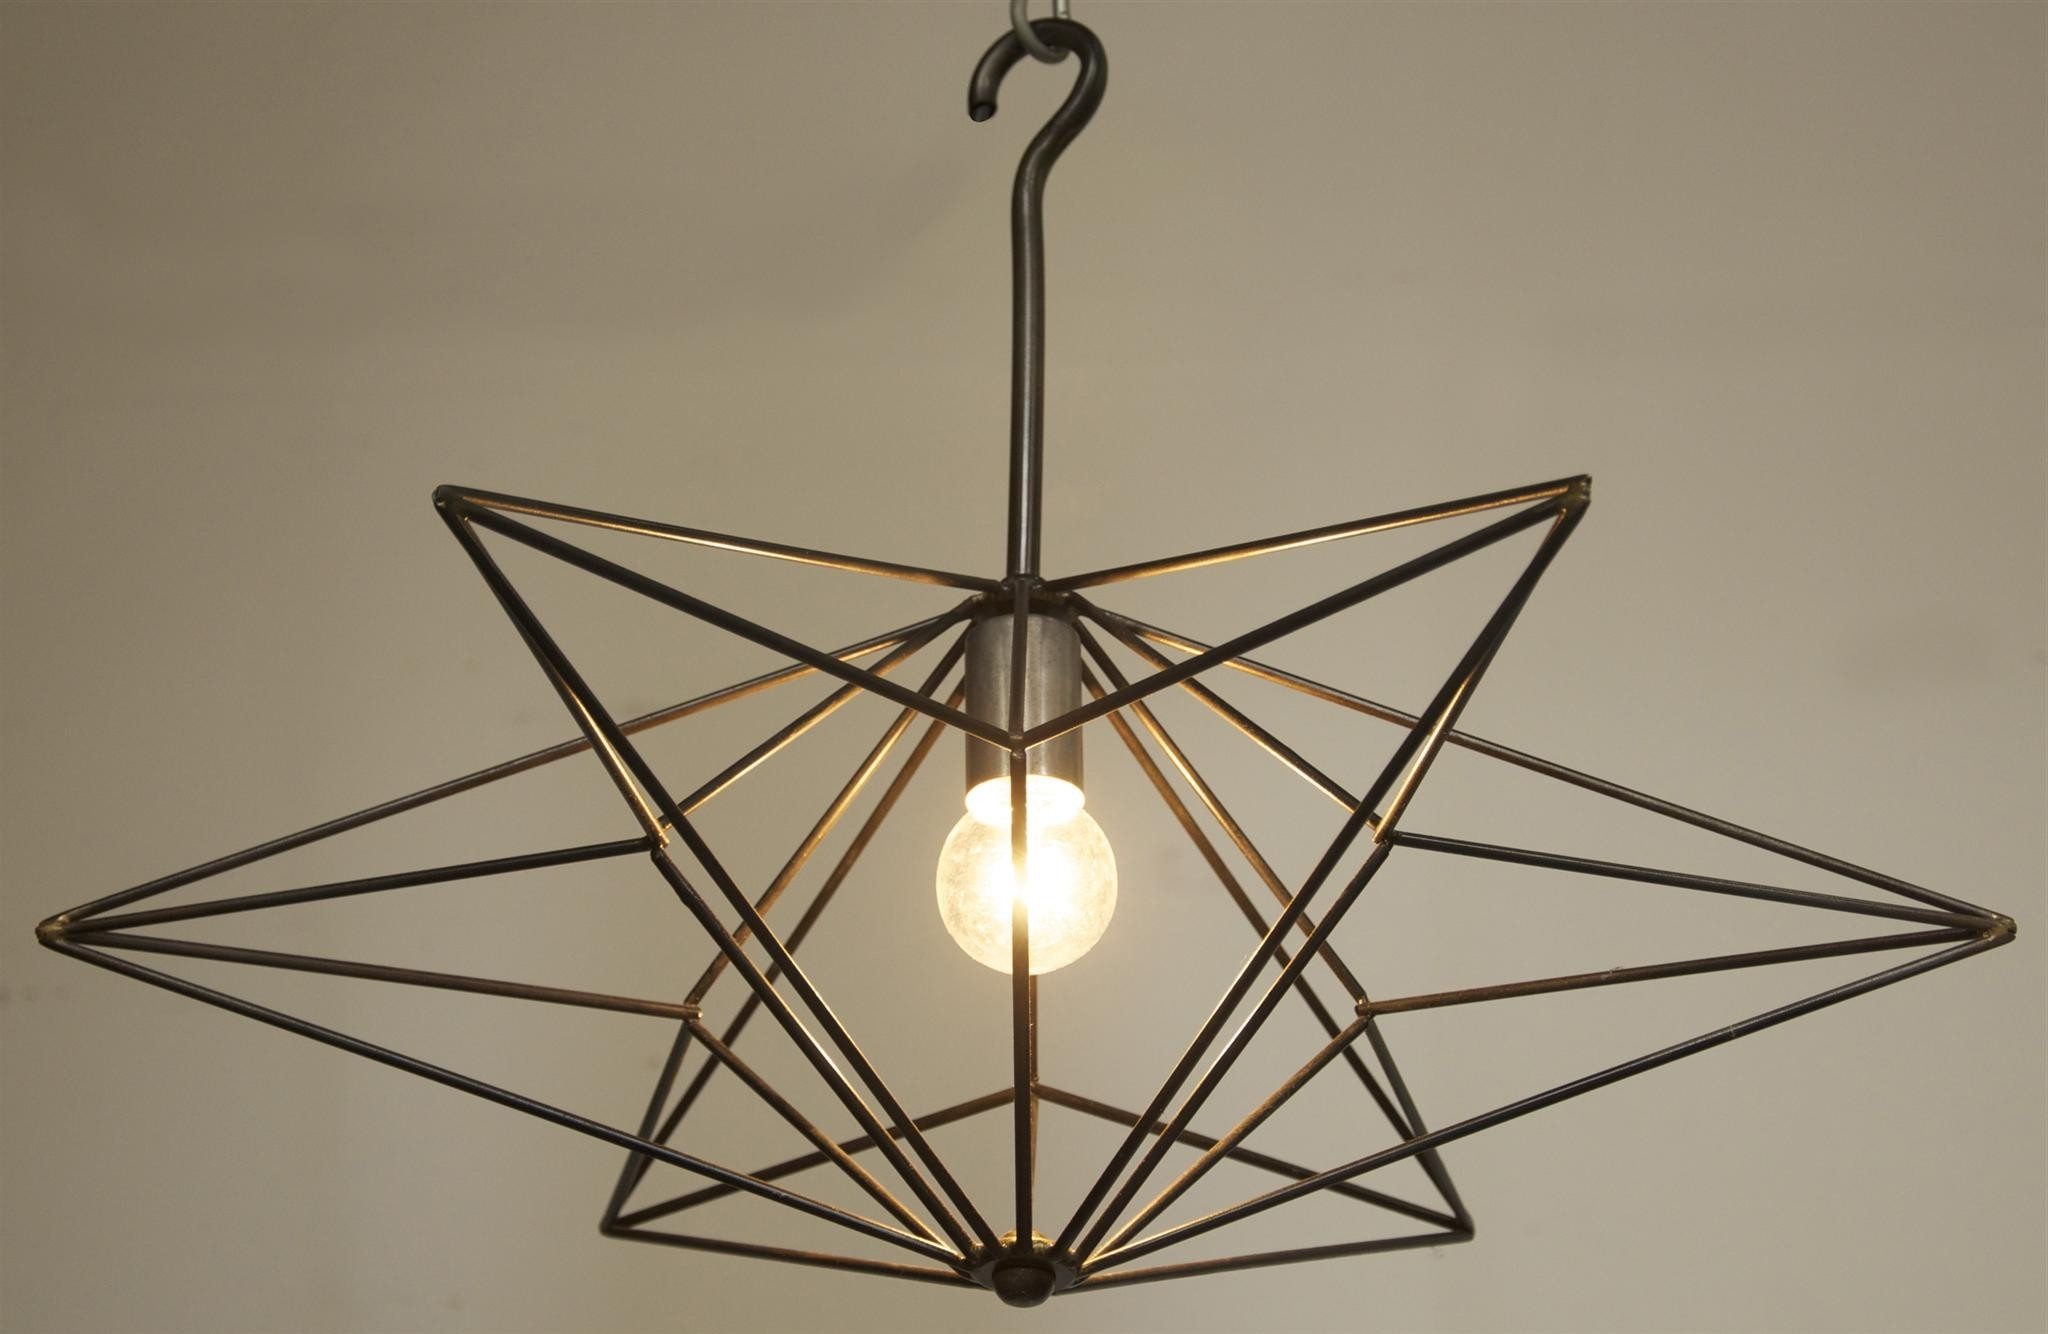 Outdoor Hanging Star Lights In Fashionable Star Pendant Light Fixture Splendid Home Depot Hanging Lights (View 10 of 20)